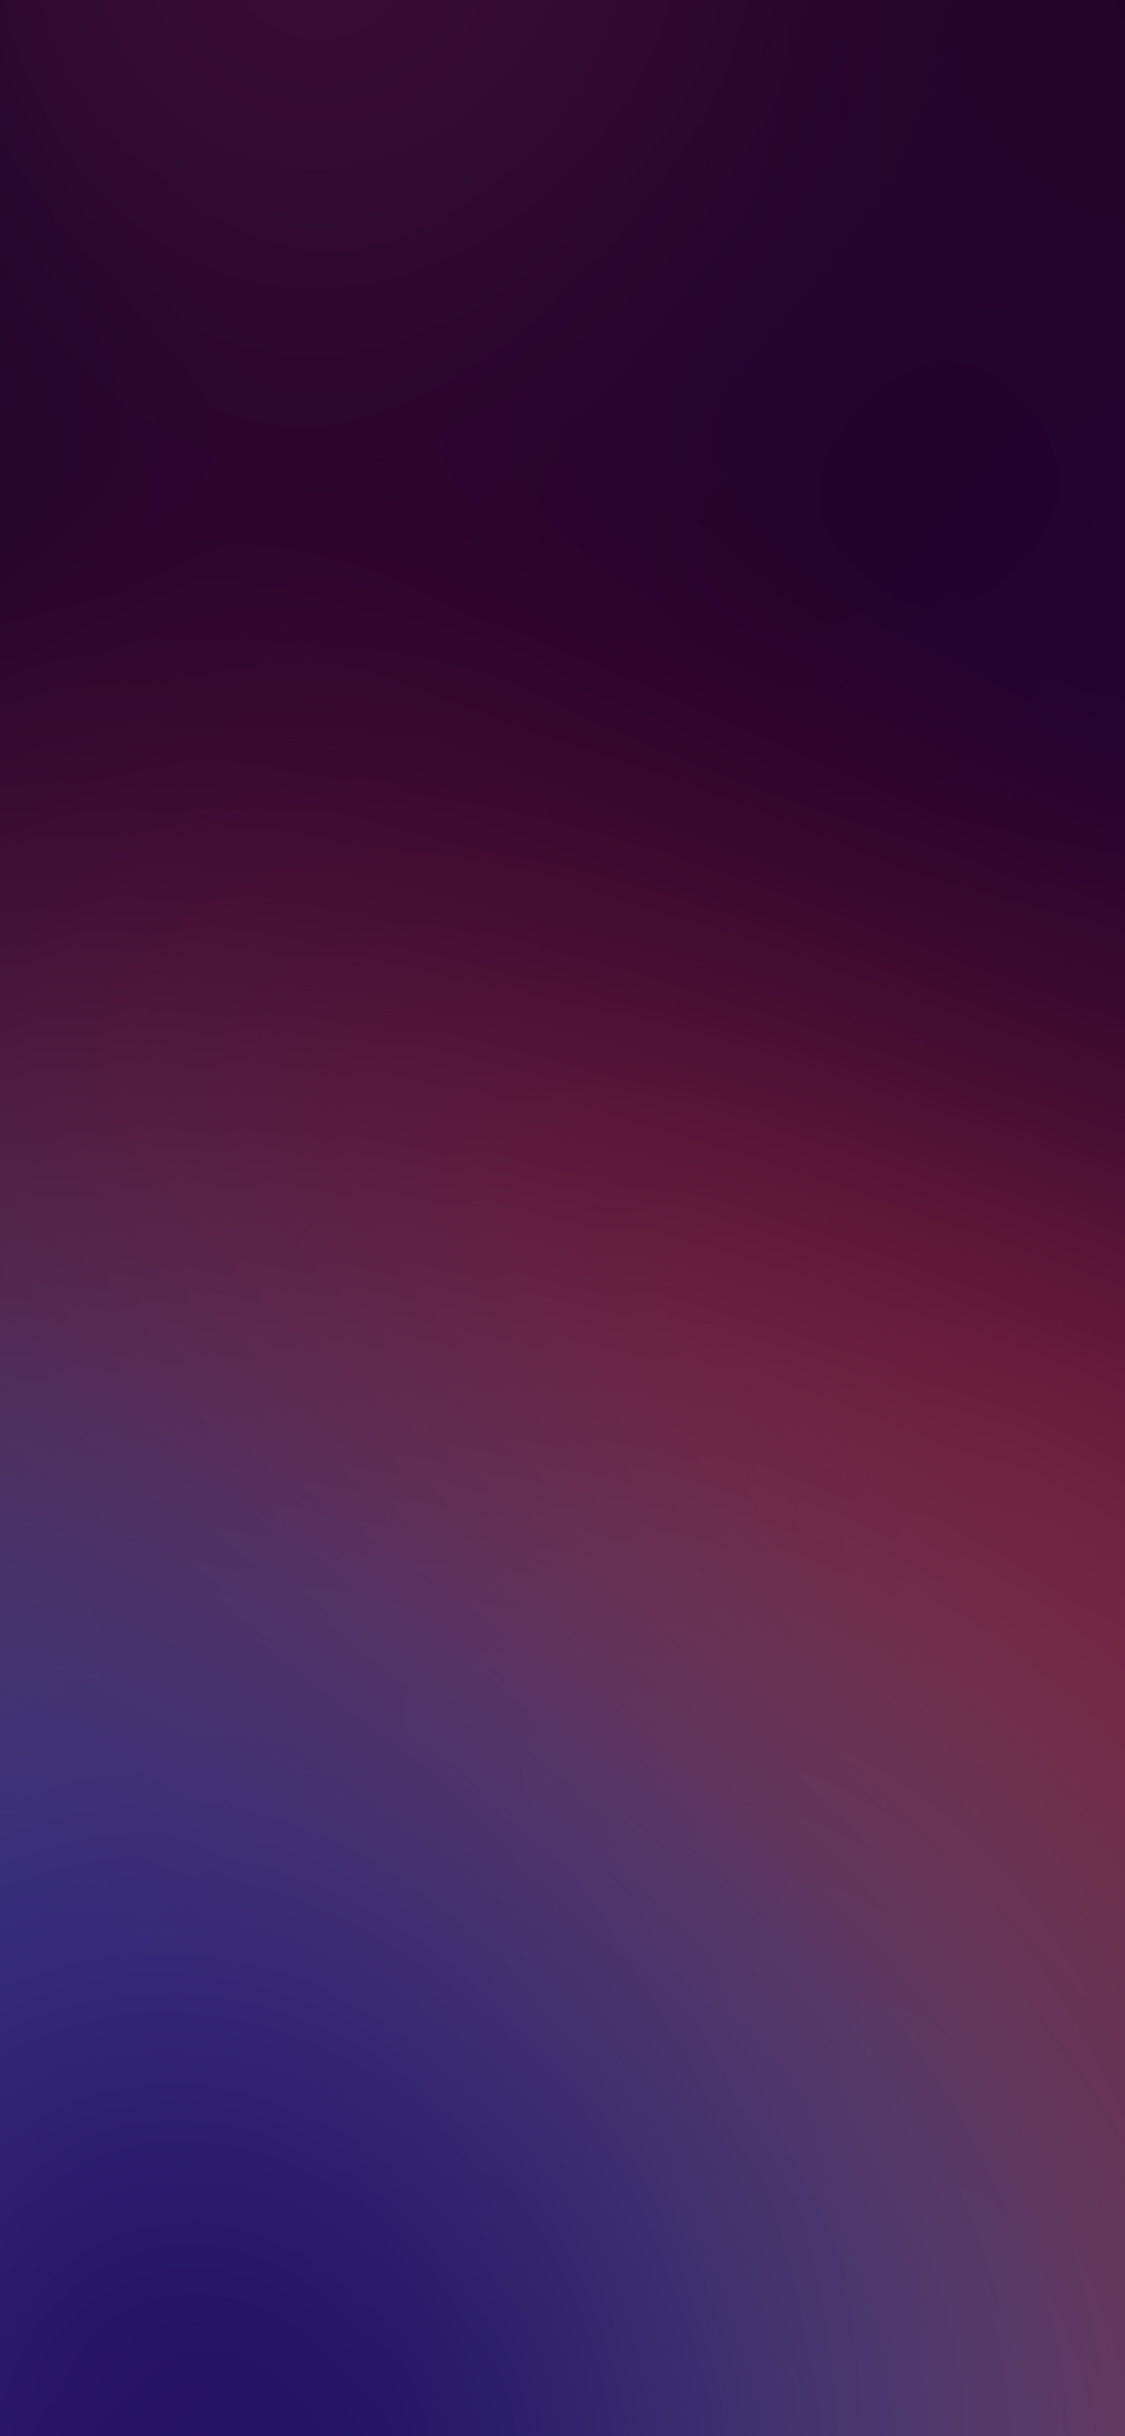 iPhoneXpapers.com-Apple-iPhone-wallpaper-si54-dark-red-earth-gradation-blur